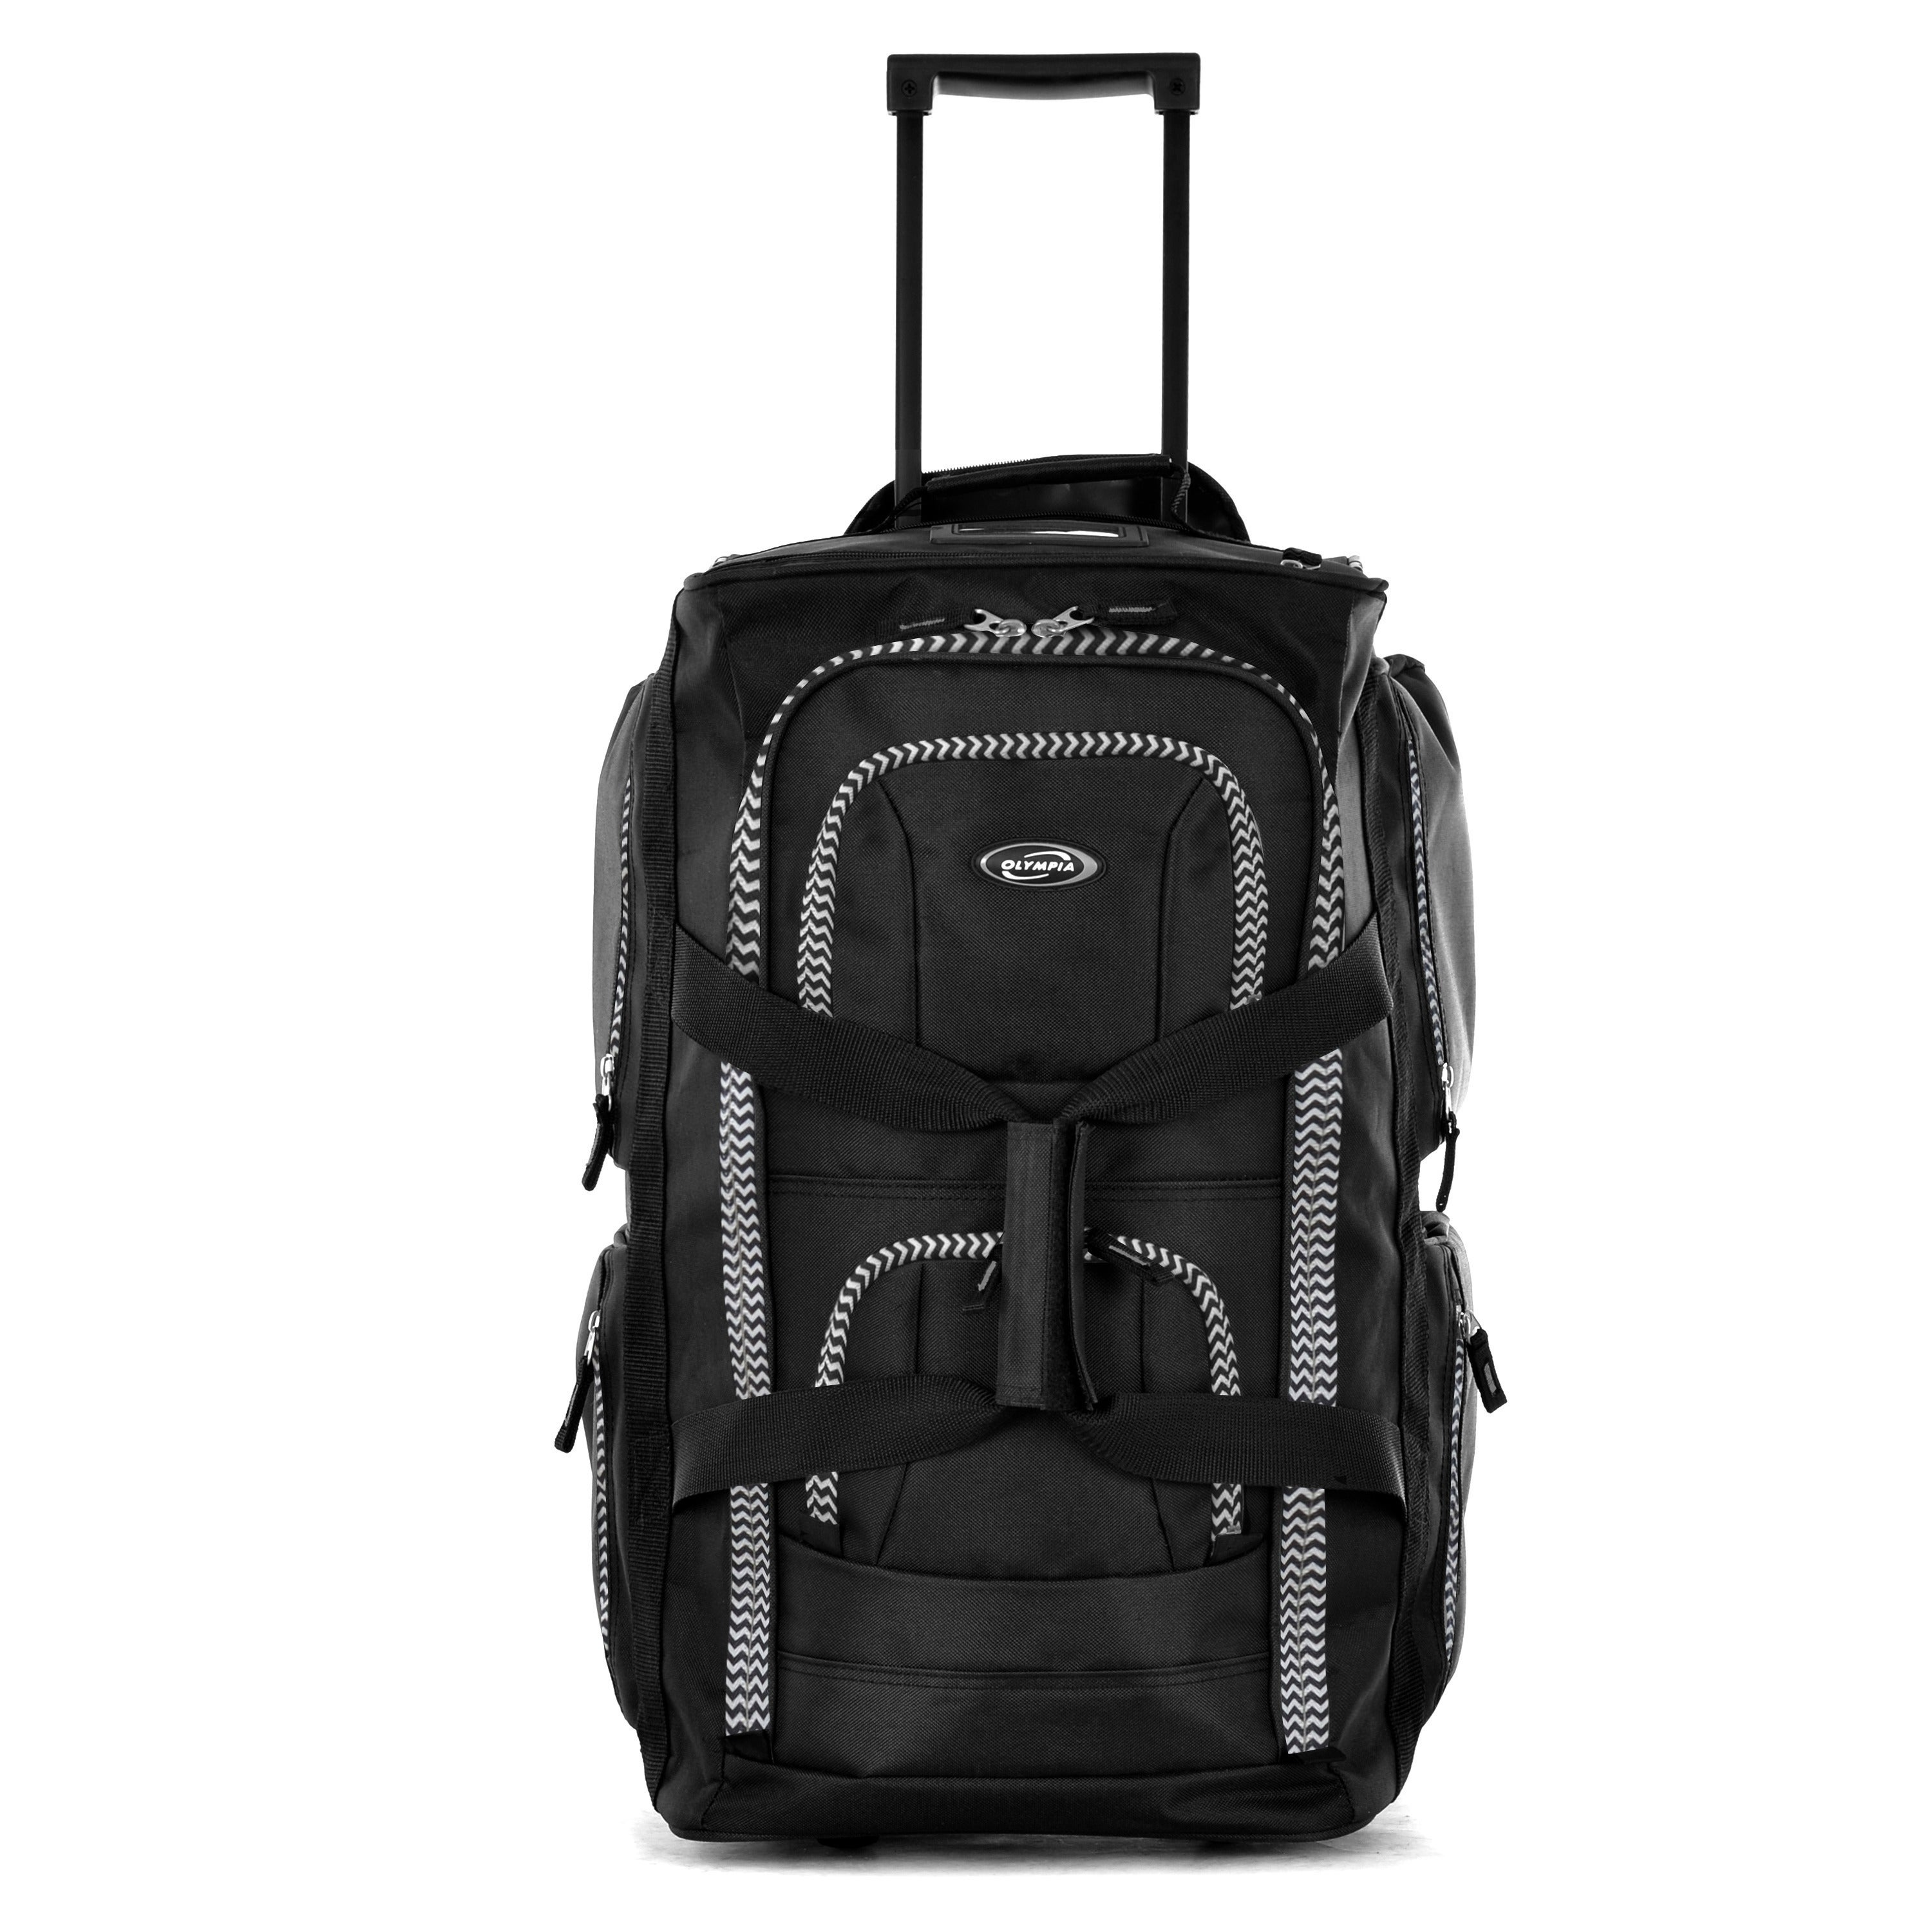 4287c81d2e Shop Olympia 22-inch Carry-on 8-pocket Rolling Upright Duffel Bag - Free  Shipping Today - Overstock - 8682753